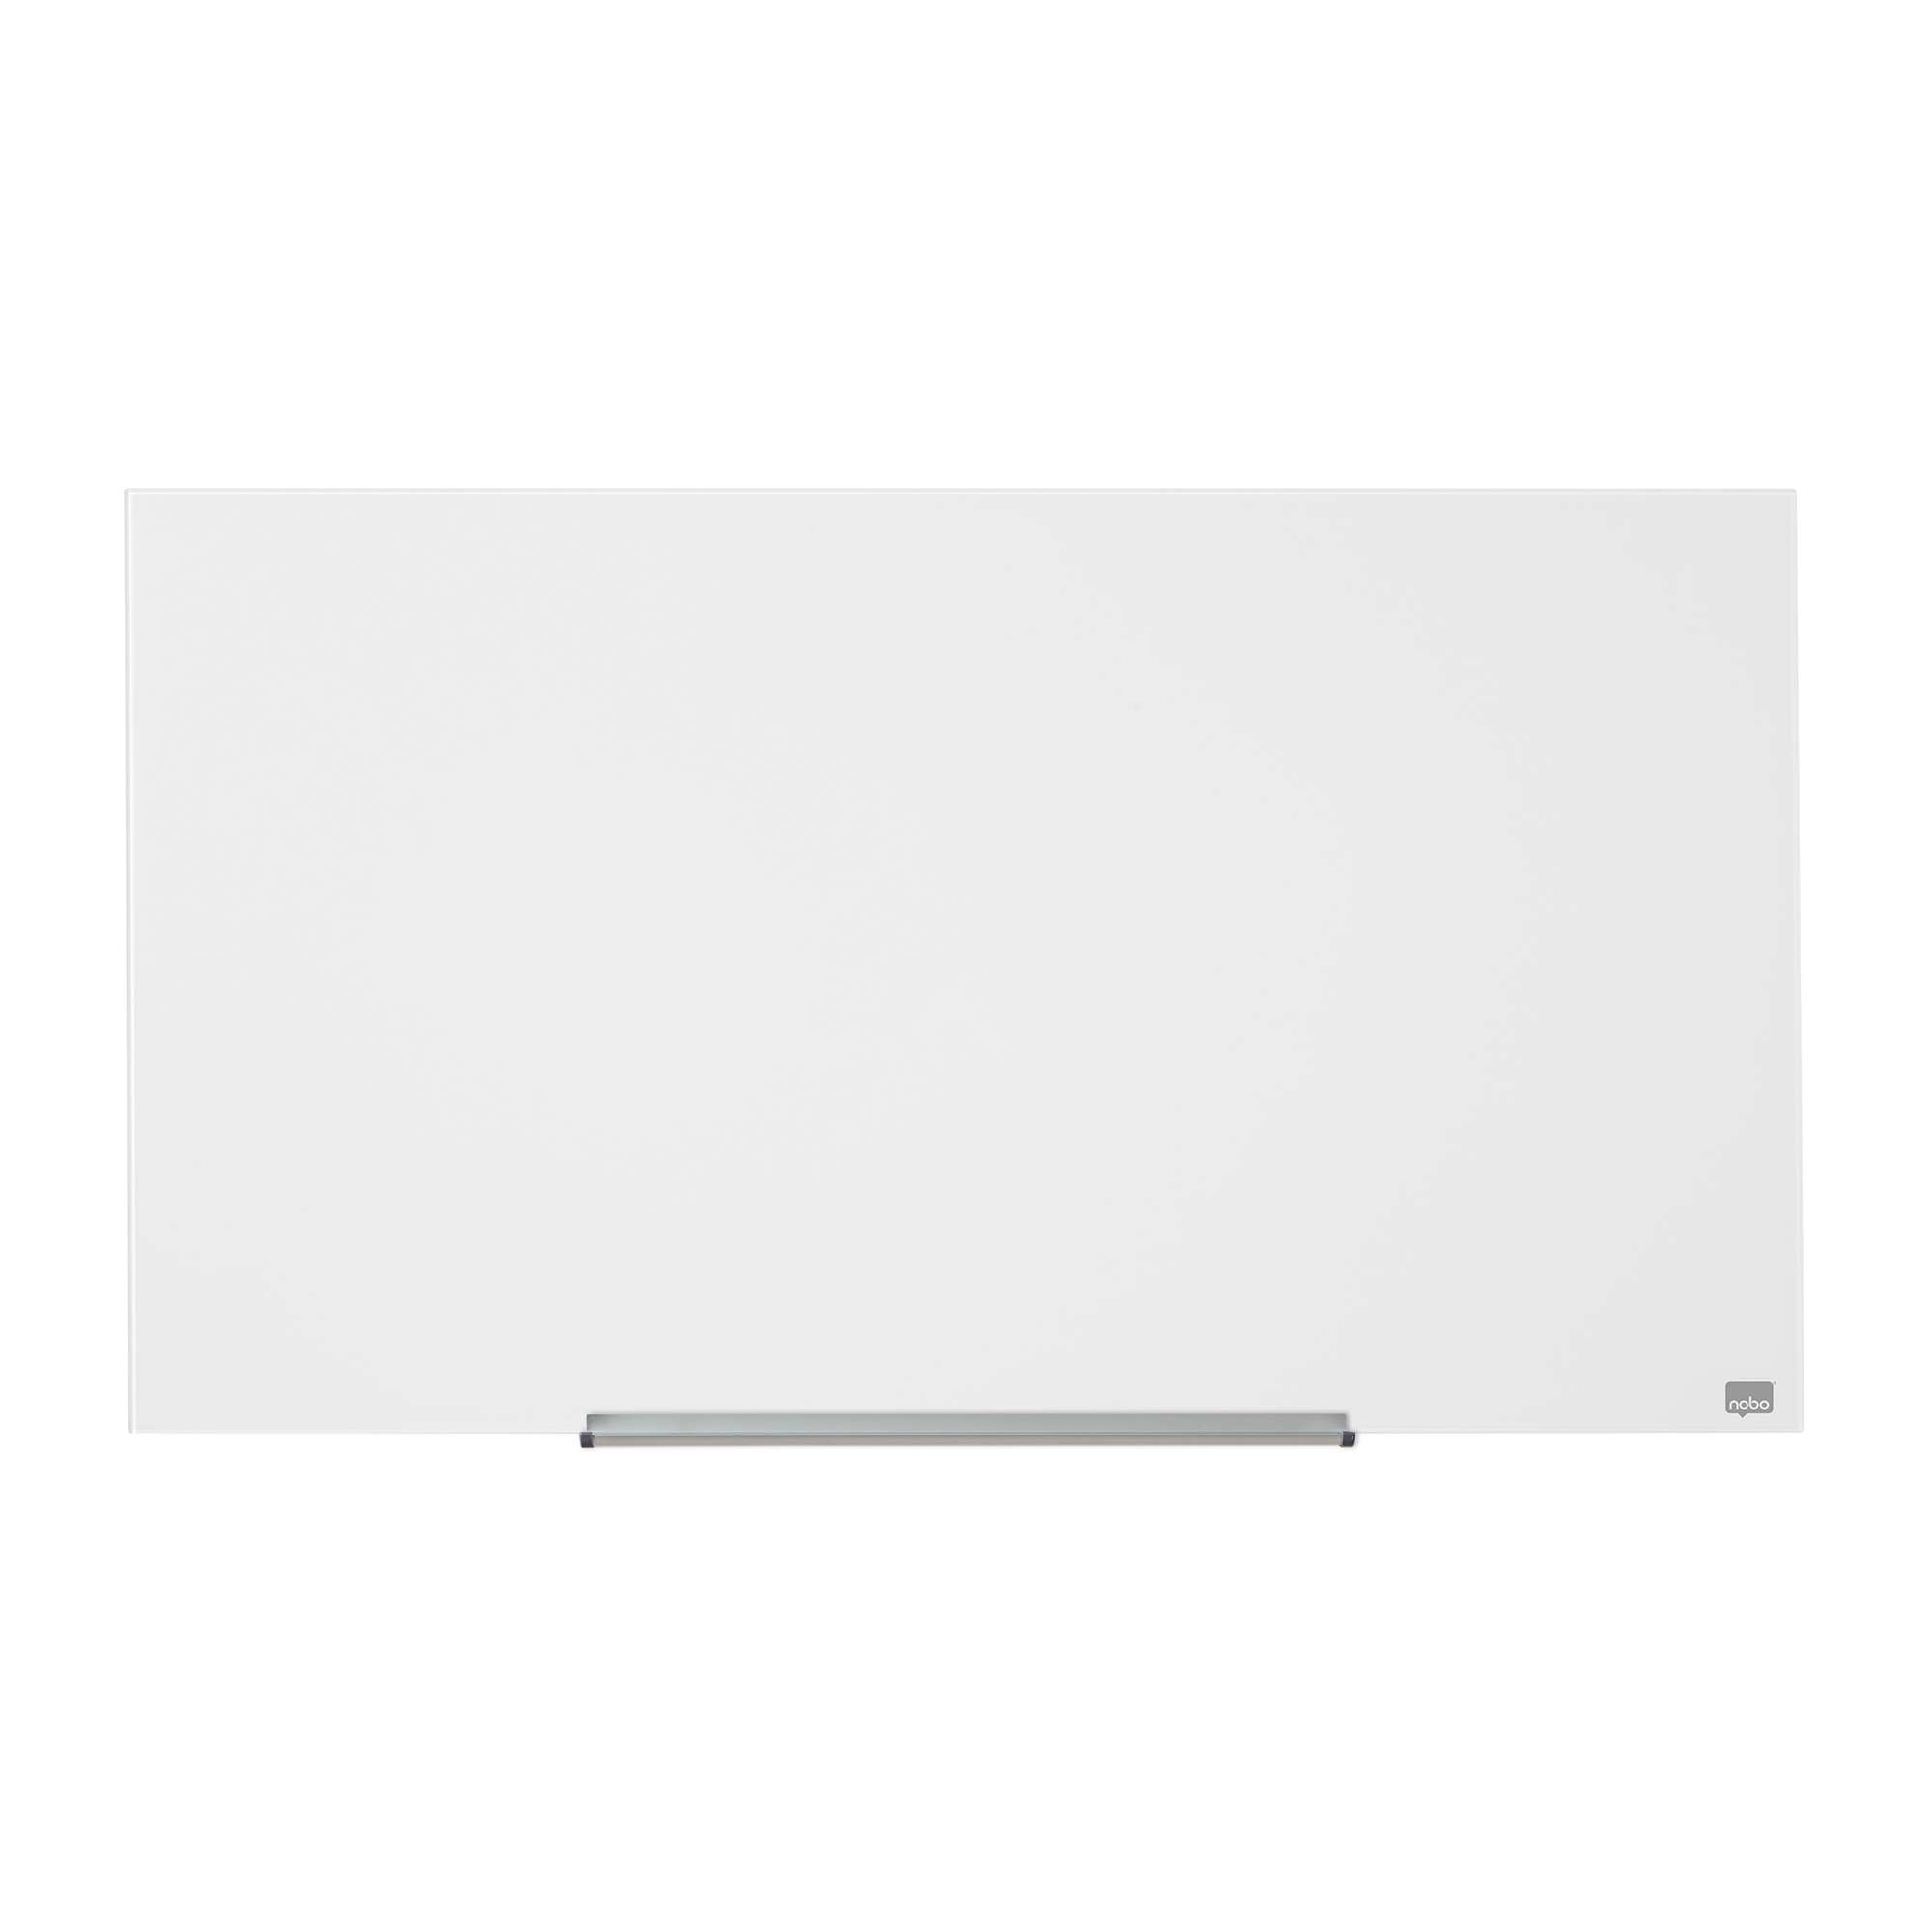 Nobo Widescreen 57 inch WBrd Glass Magnetic Scratch-Resistant Fixings Inc W1260xH710mm Wht Ref 1905177